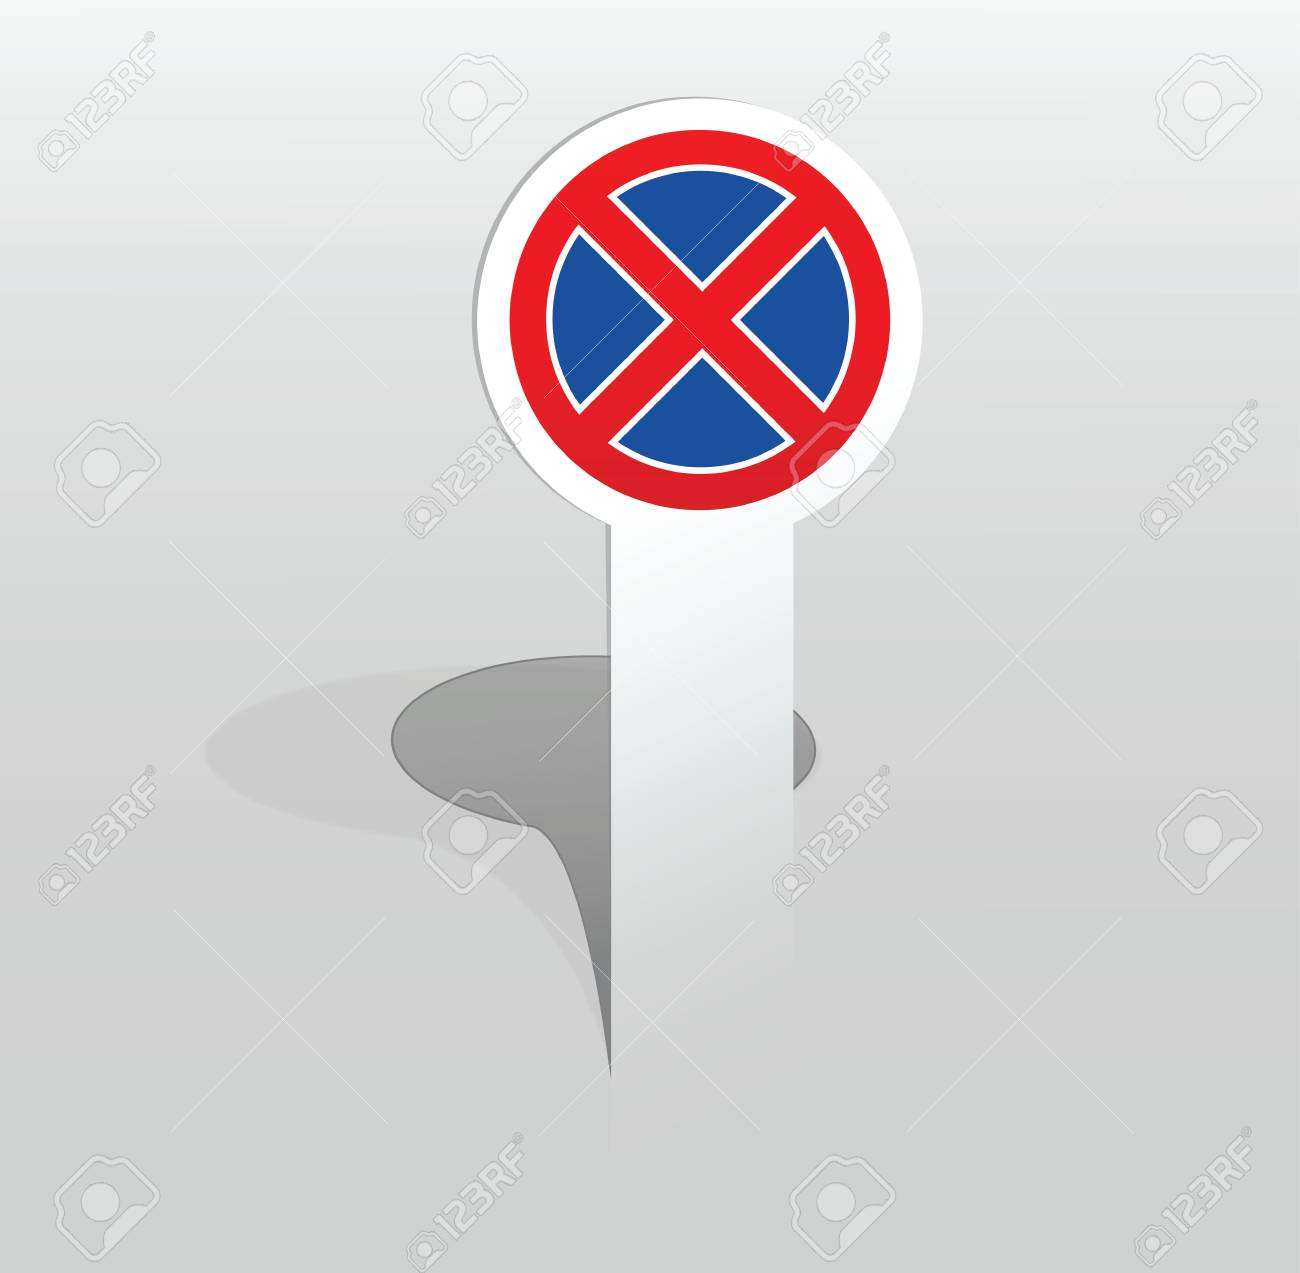 Vector illustration of paper sticker with no stopping sign Stock Vector - 17775033